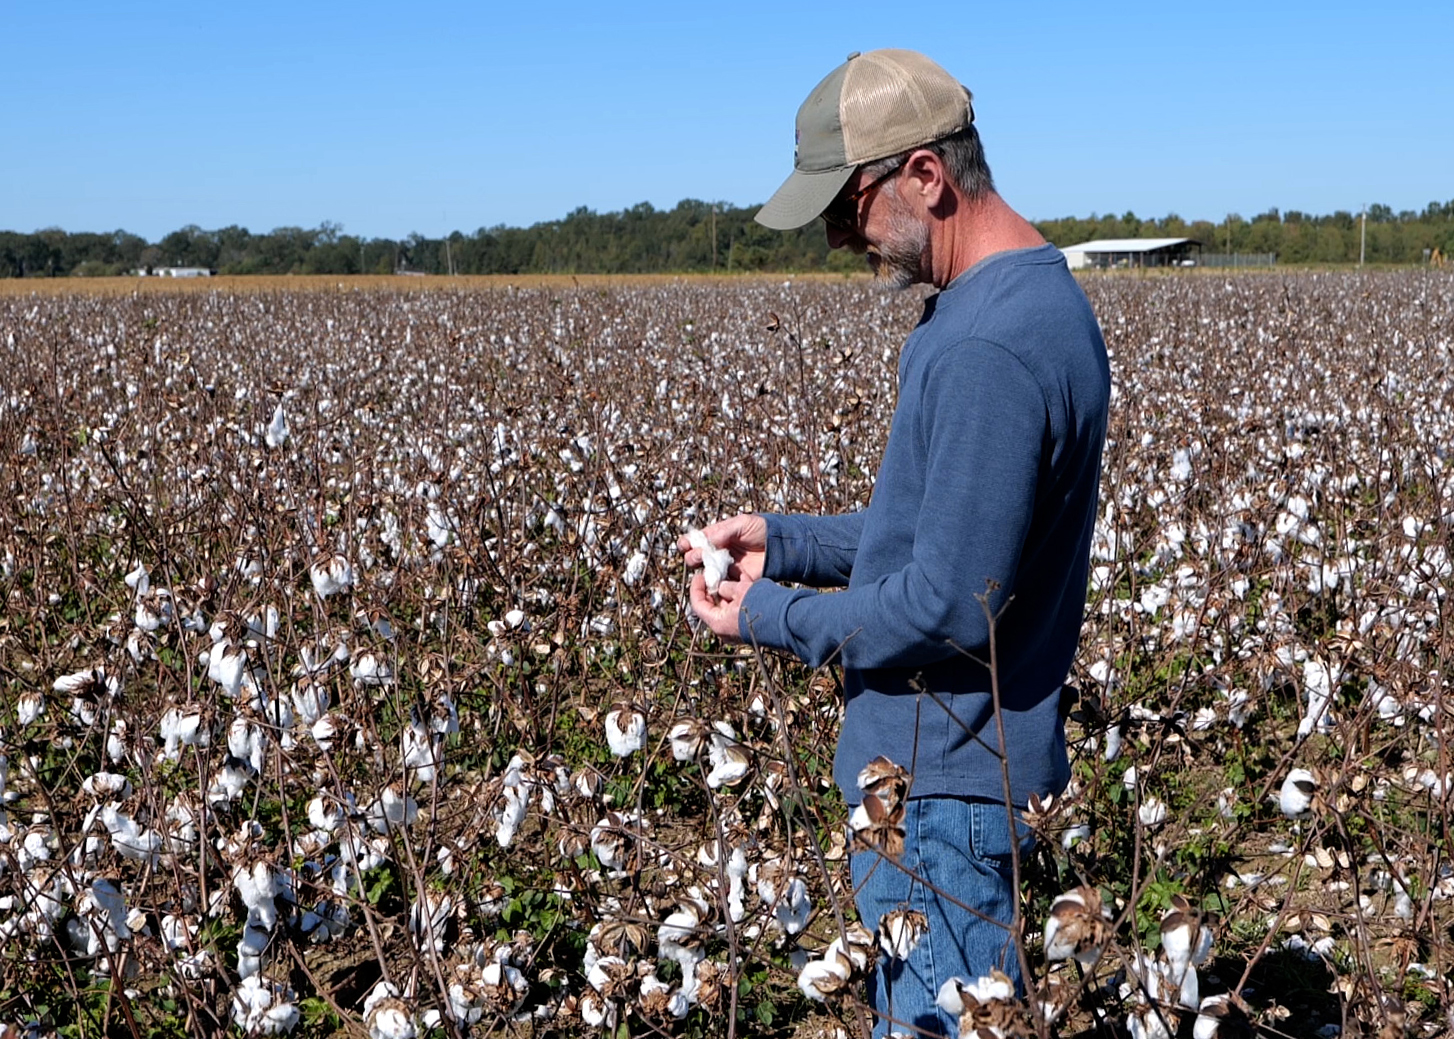 Trey price in a field of cotton.